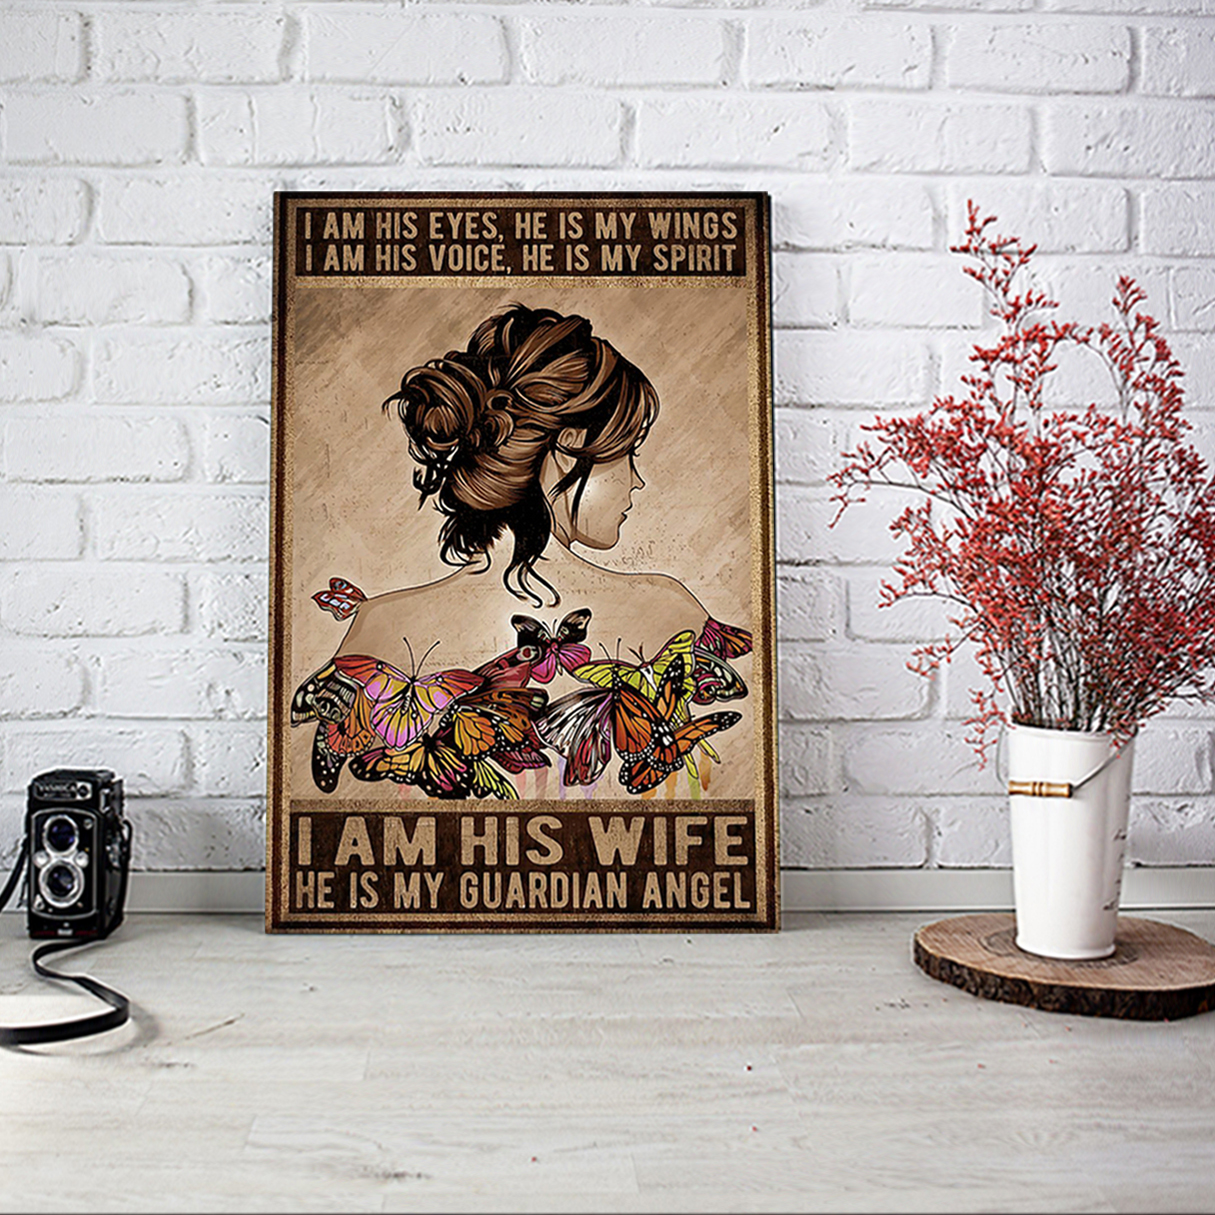 Butterfly girl I am his eyes he is my wings poster A1